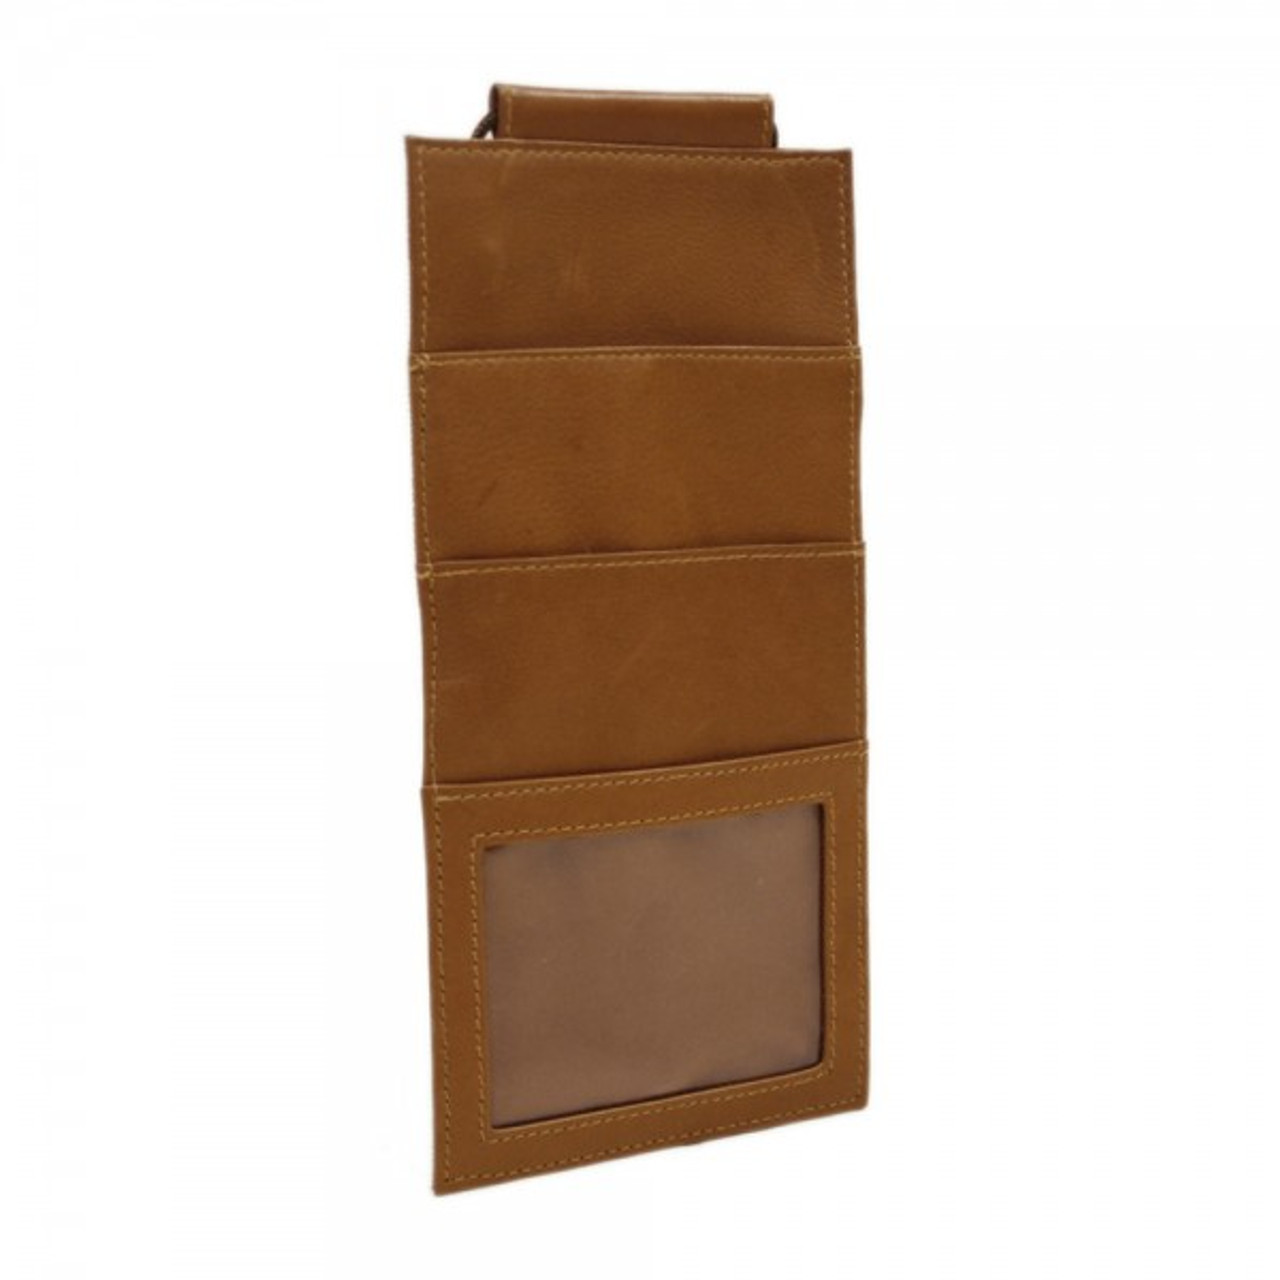 15a1d5485b6c Piel Leather Hanging Travel Wallet 2856